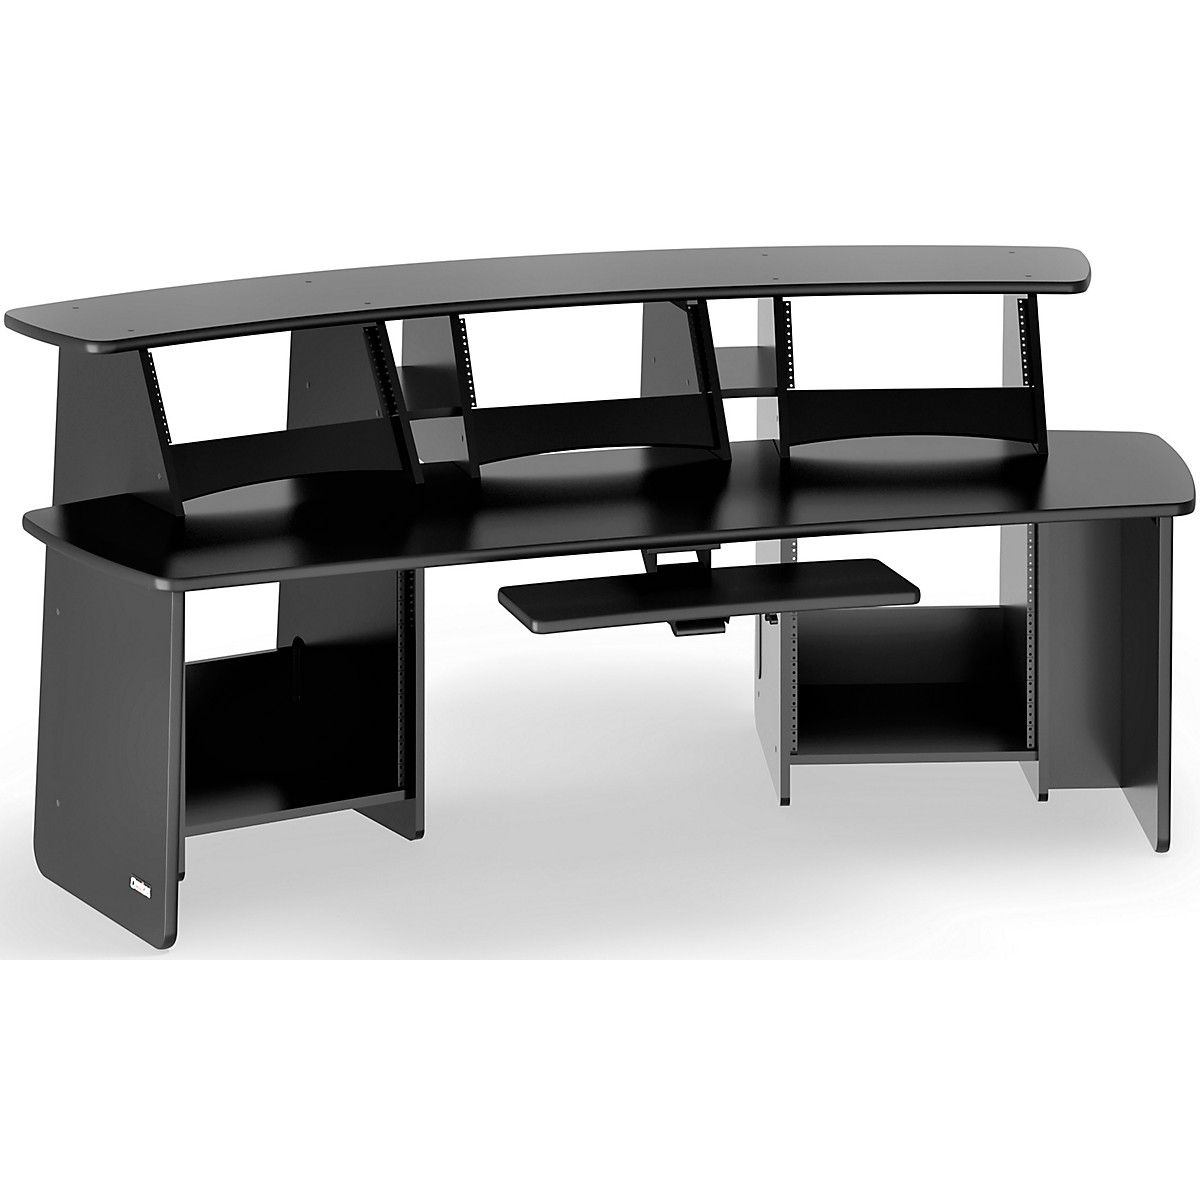 Omnirax Force 12 Professional Workstation